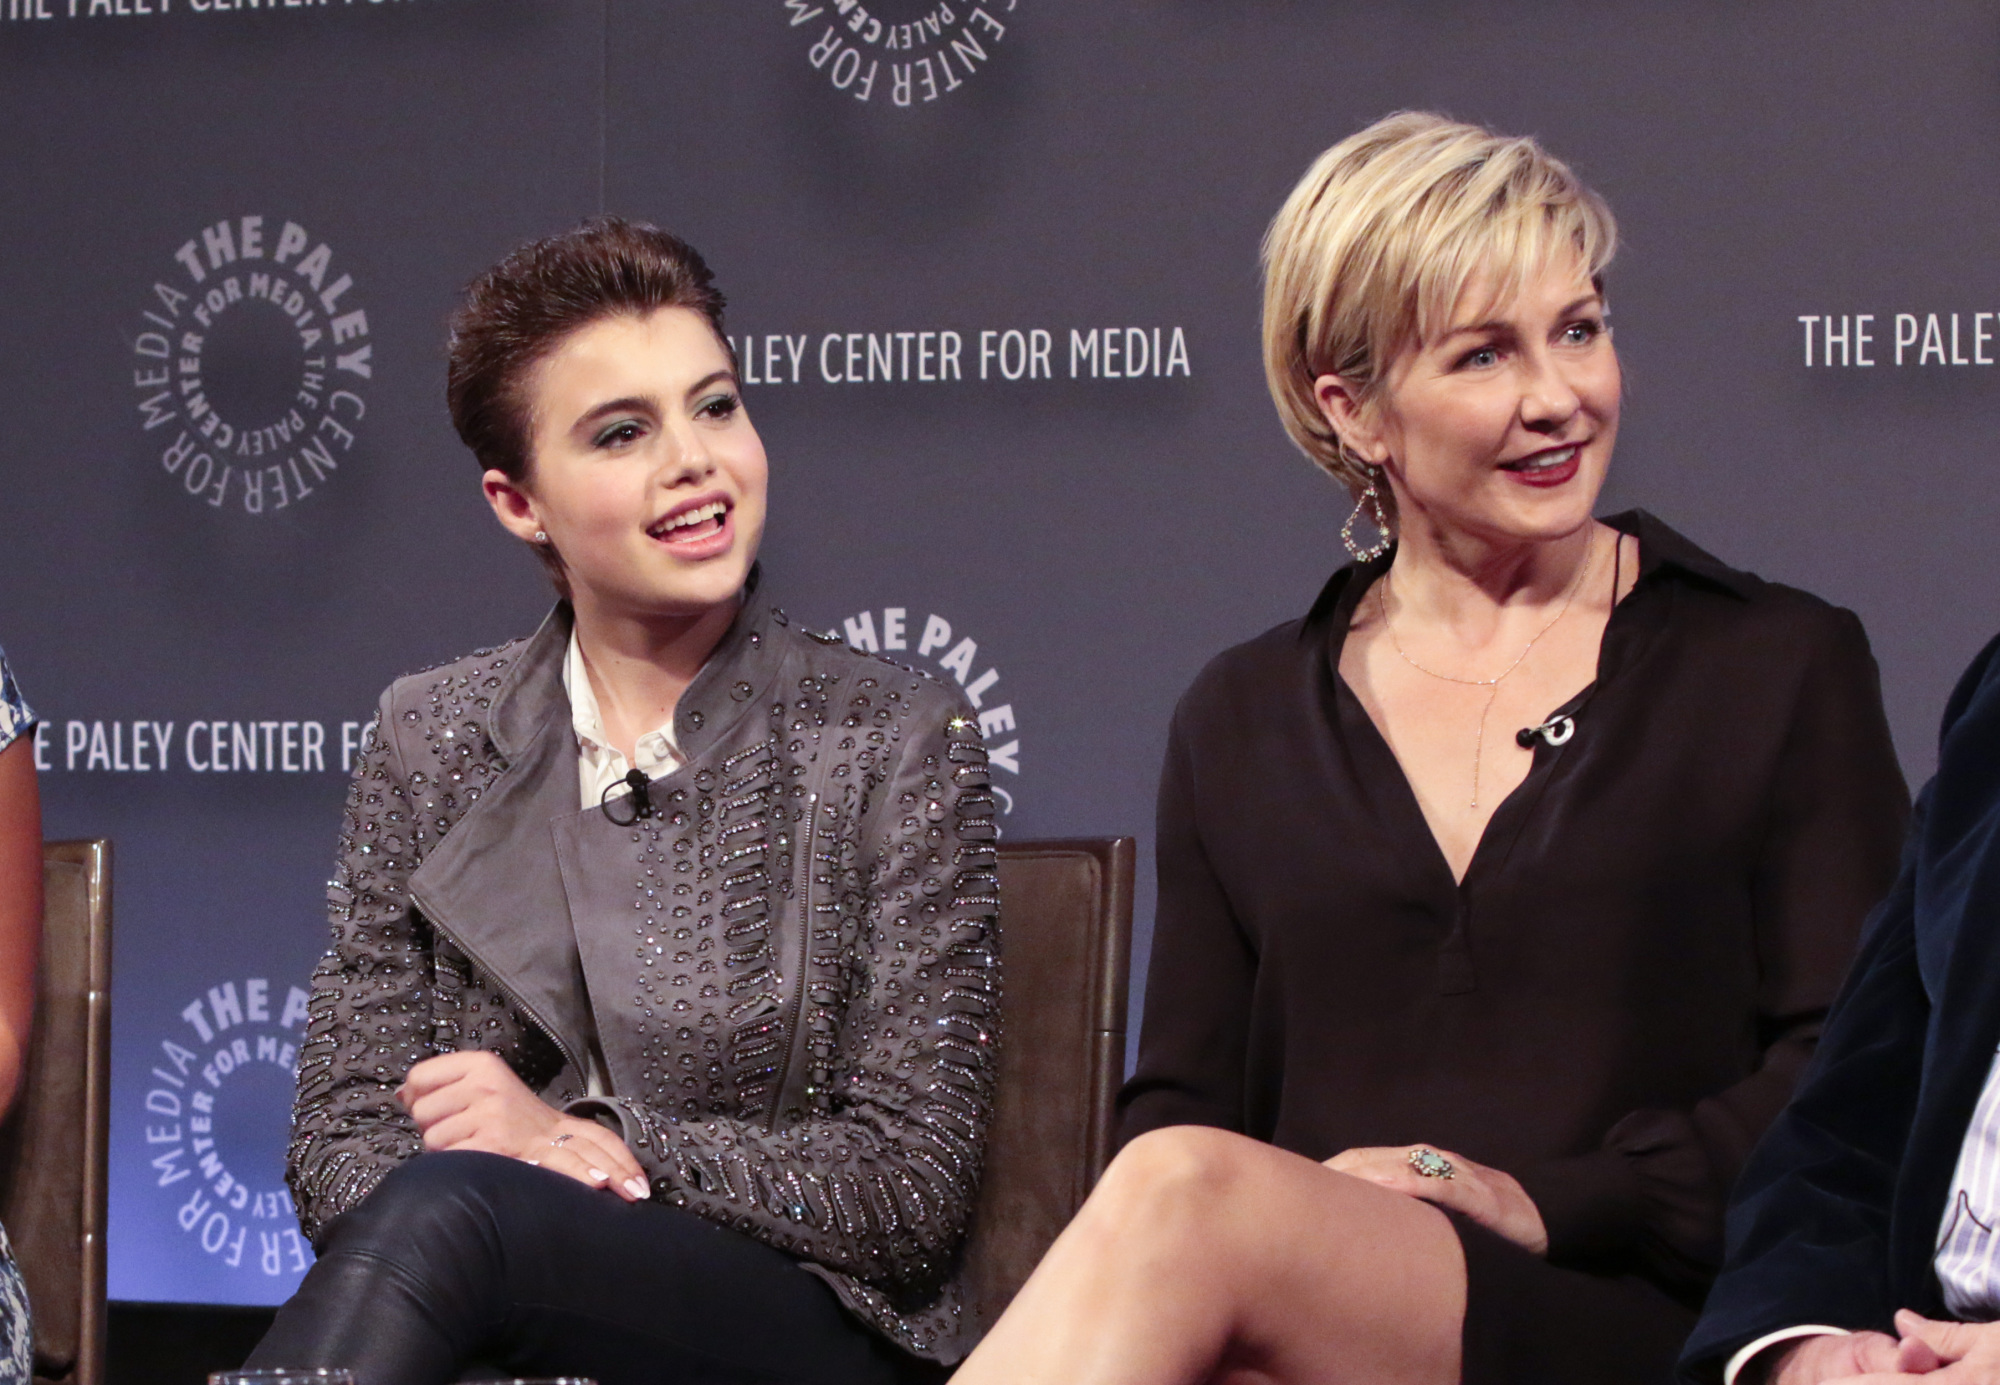 6. Sami Gayle and Amy Carlson have awesome hairdos.